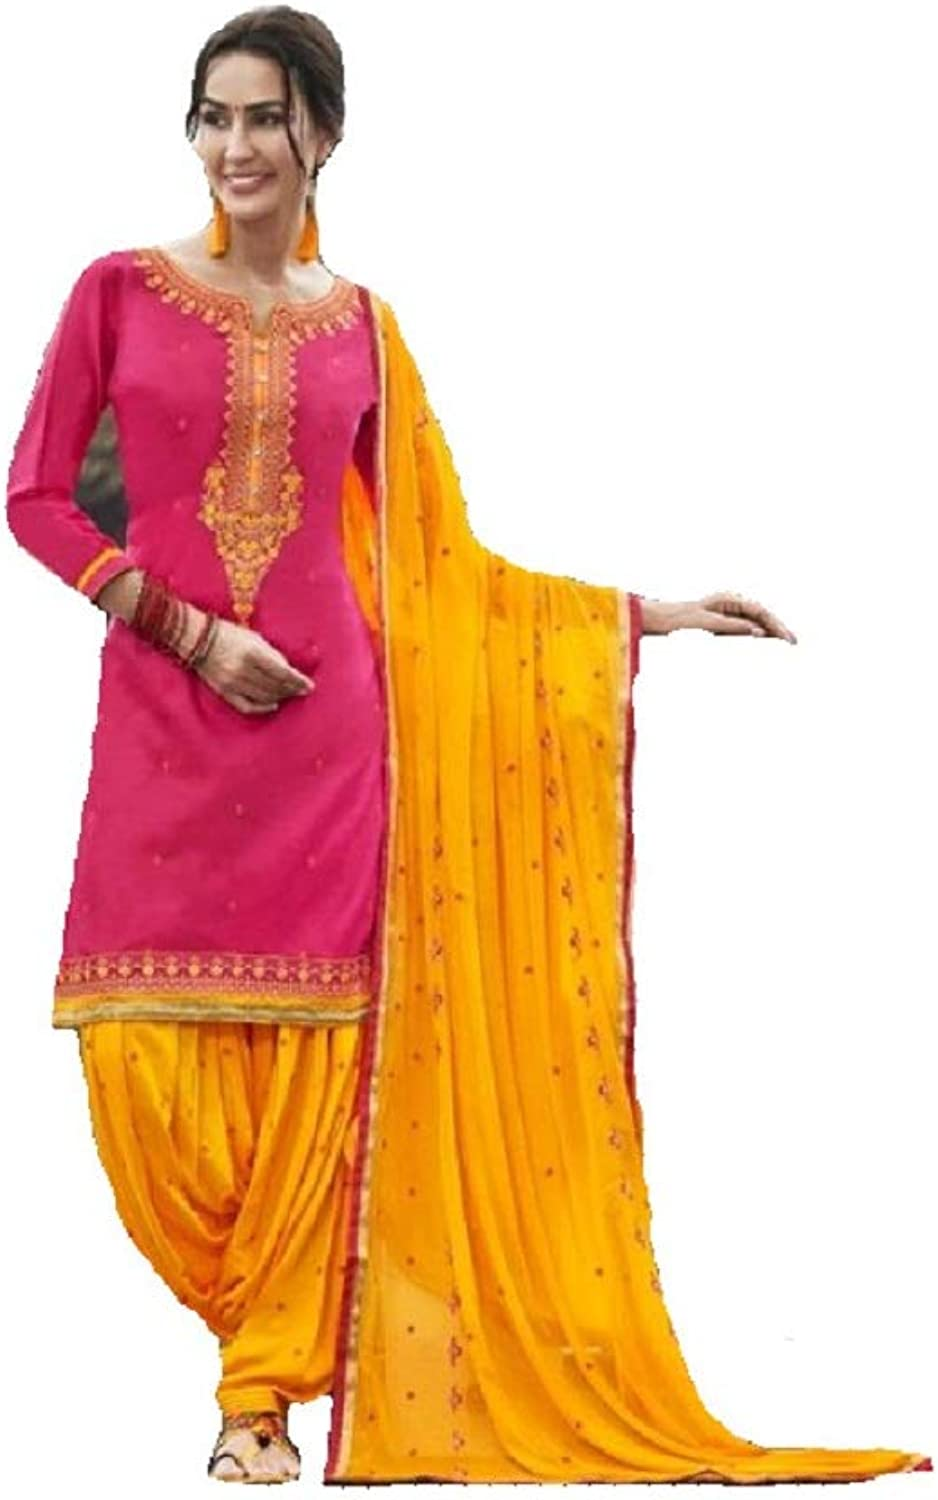 Delisa Ready to Wear Patiala Salwar Embroidered Cotton Salwar Kameez Suit for Womens 010